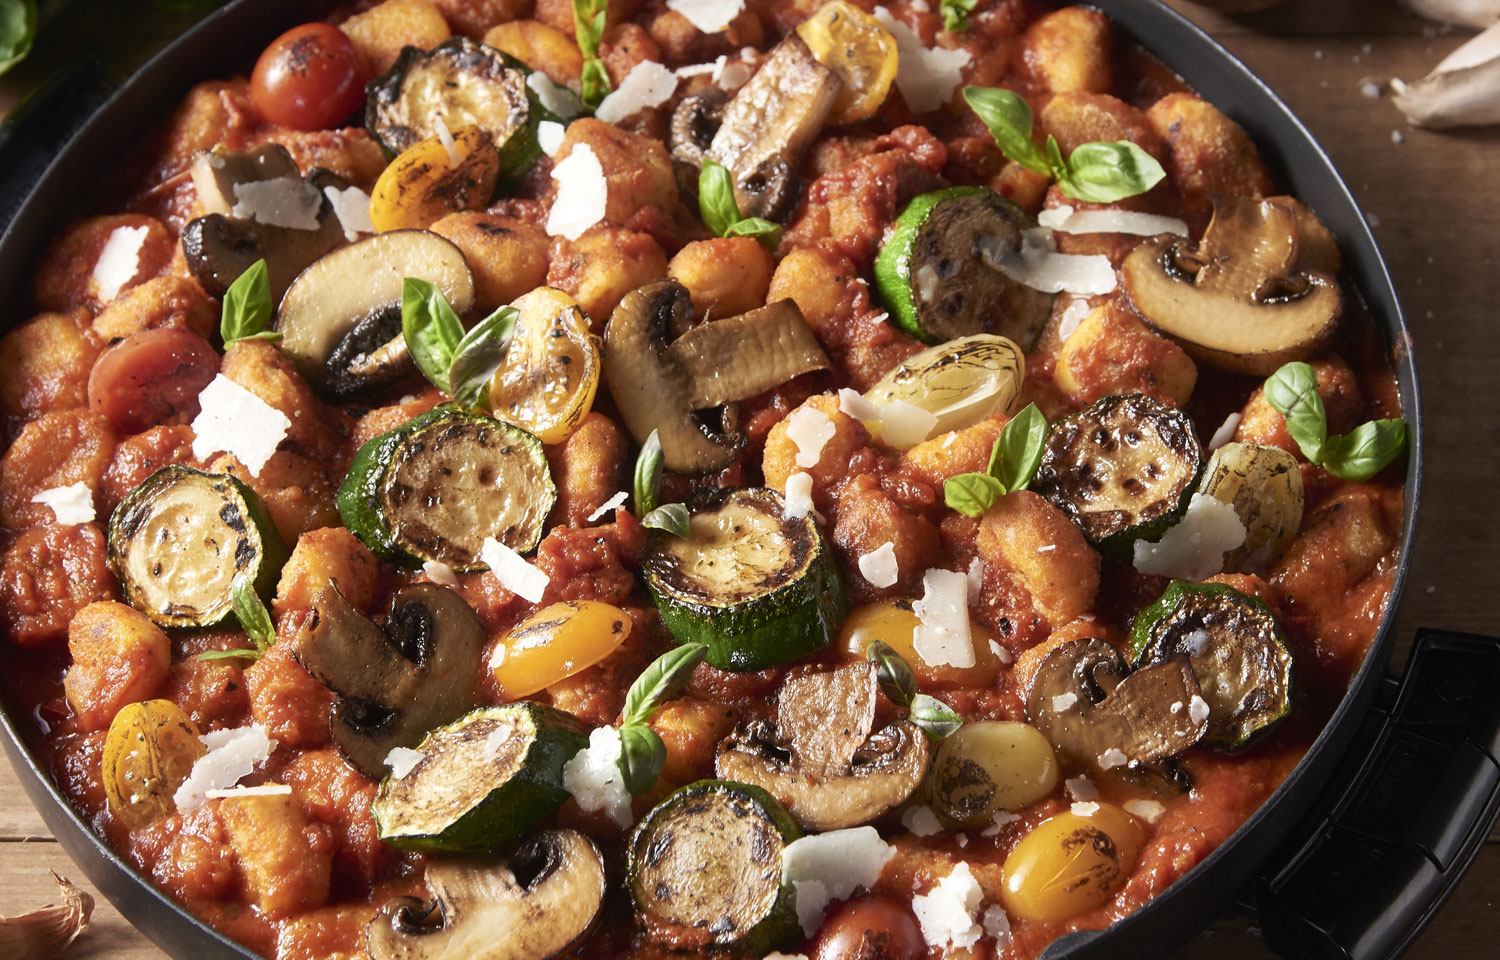 Roast Gnocchi with Mediterranean Vegetables